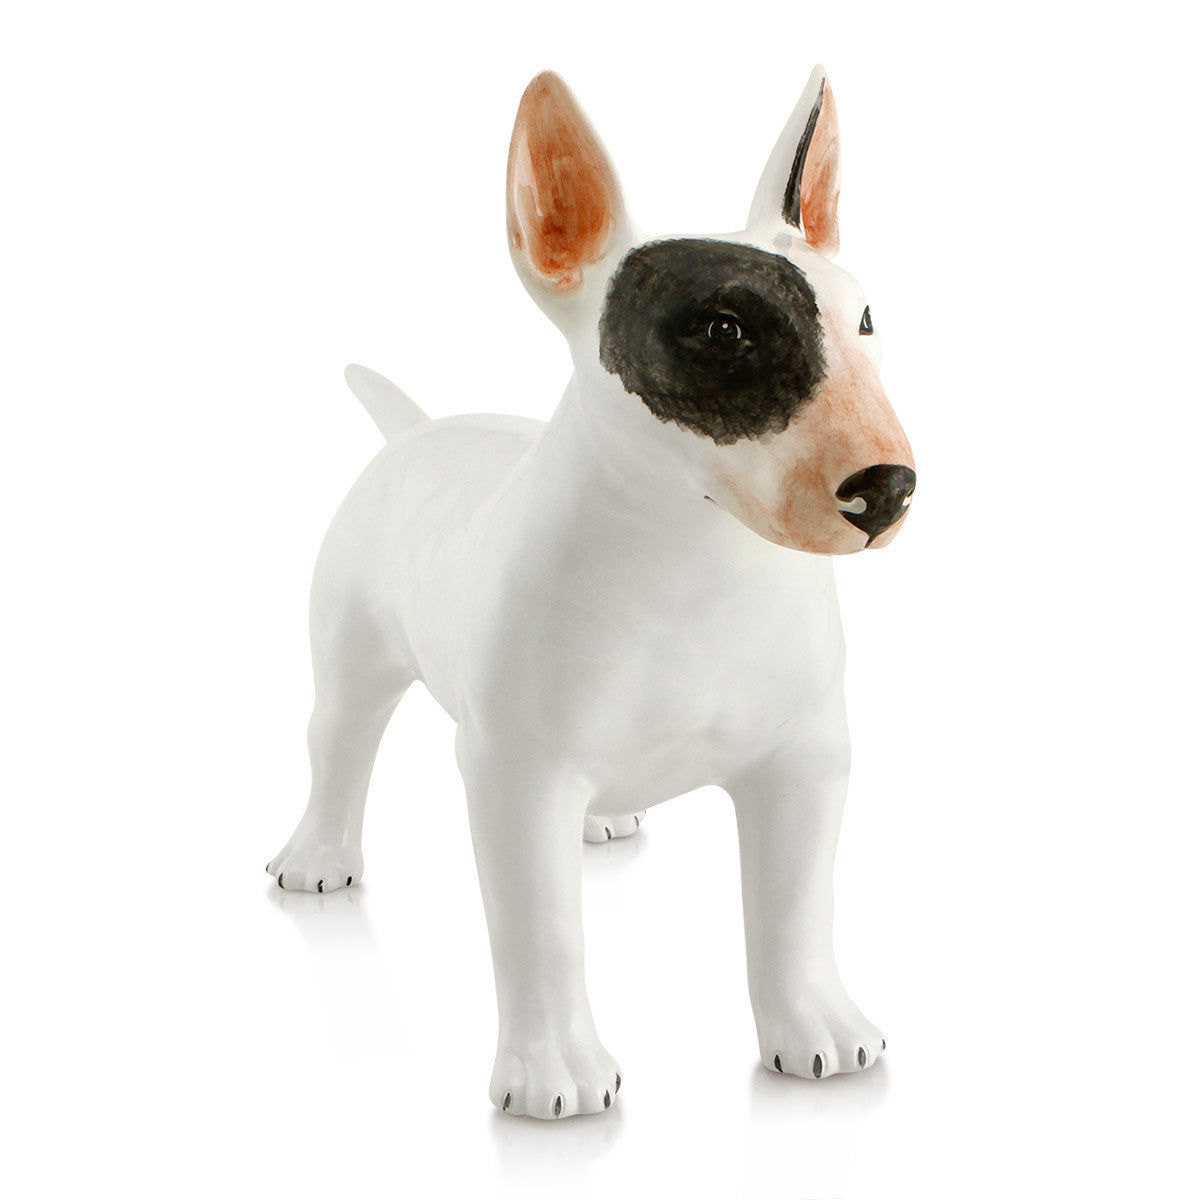 Ceramic bull terrier statue with lifelike details